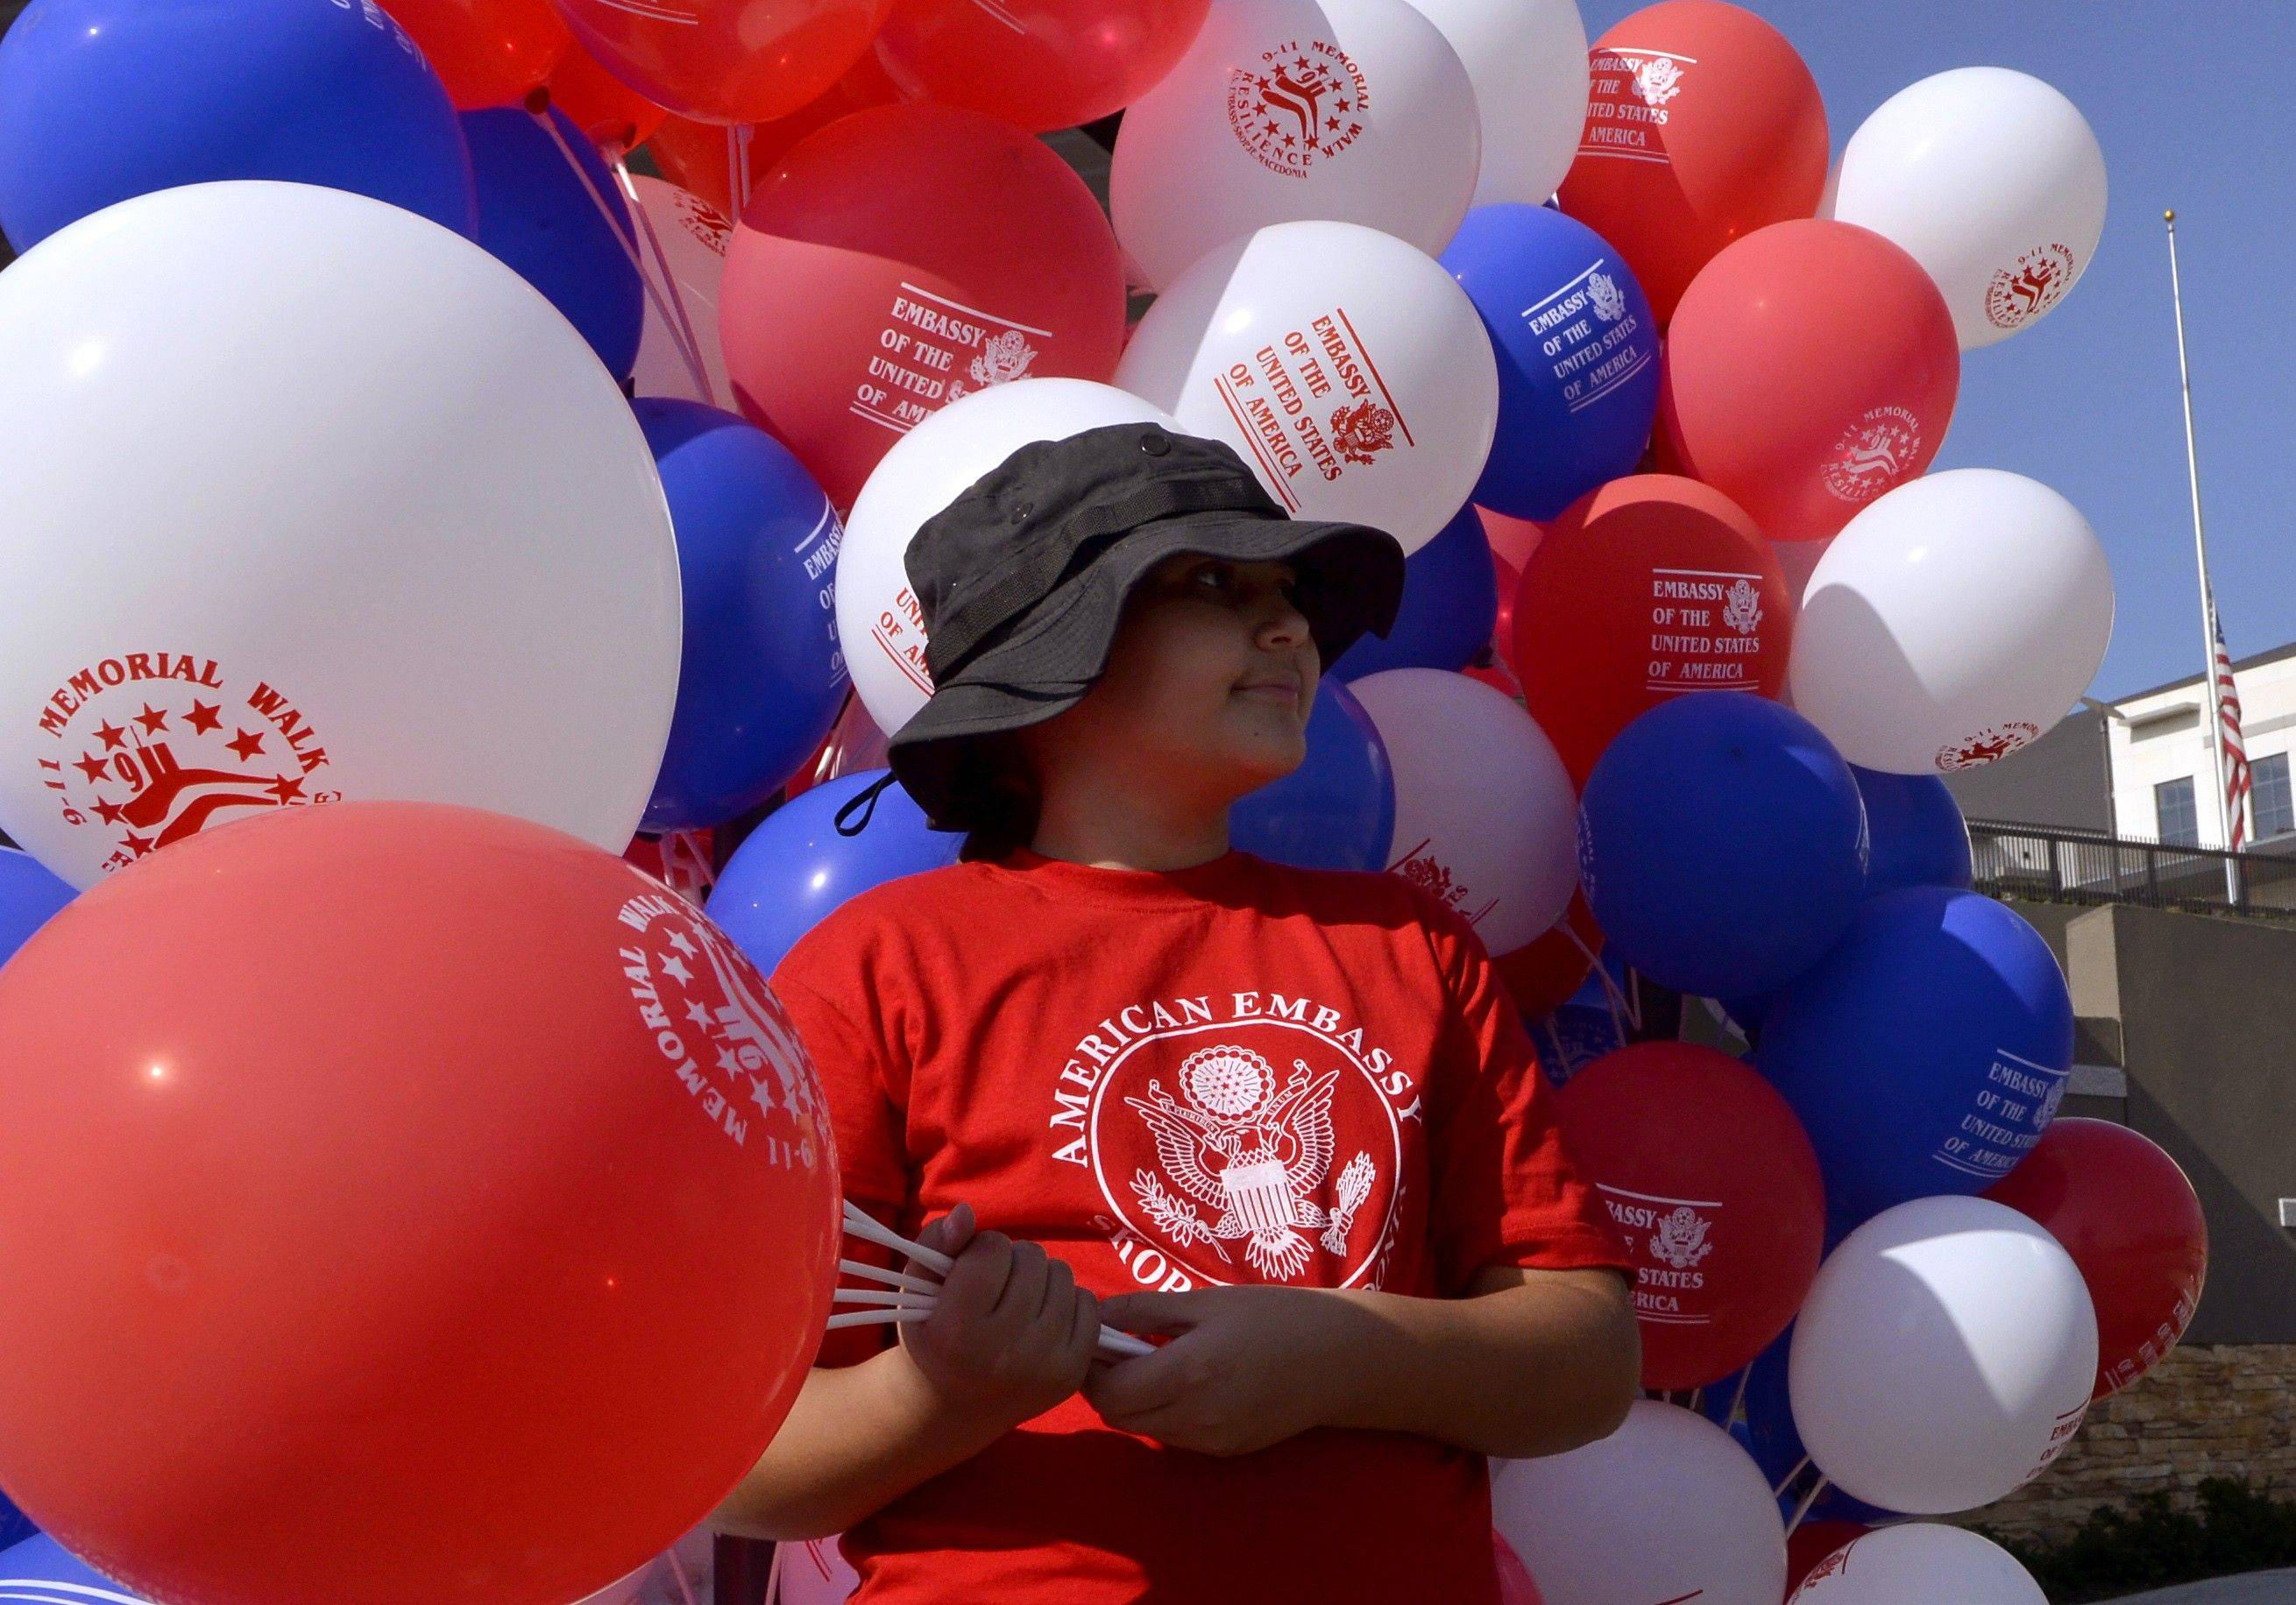 A girl holding balloons looks on in front of the U.S. Embassy compound in Macedonia's capital Skopje, on Sunday, Sept. 11, 2011. U.S. Embassy community organized Sunday a Memorial Walk to honor the 9/11 victims, survivors and their families, marking the 10th anniversary of the terrorist attacks on the United States.